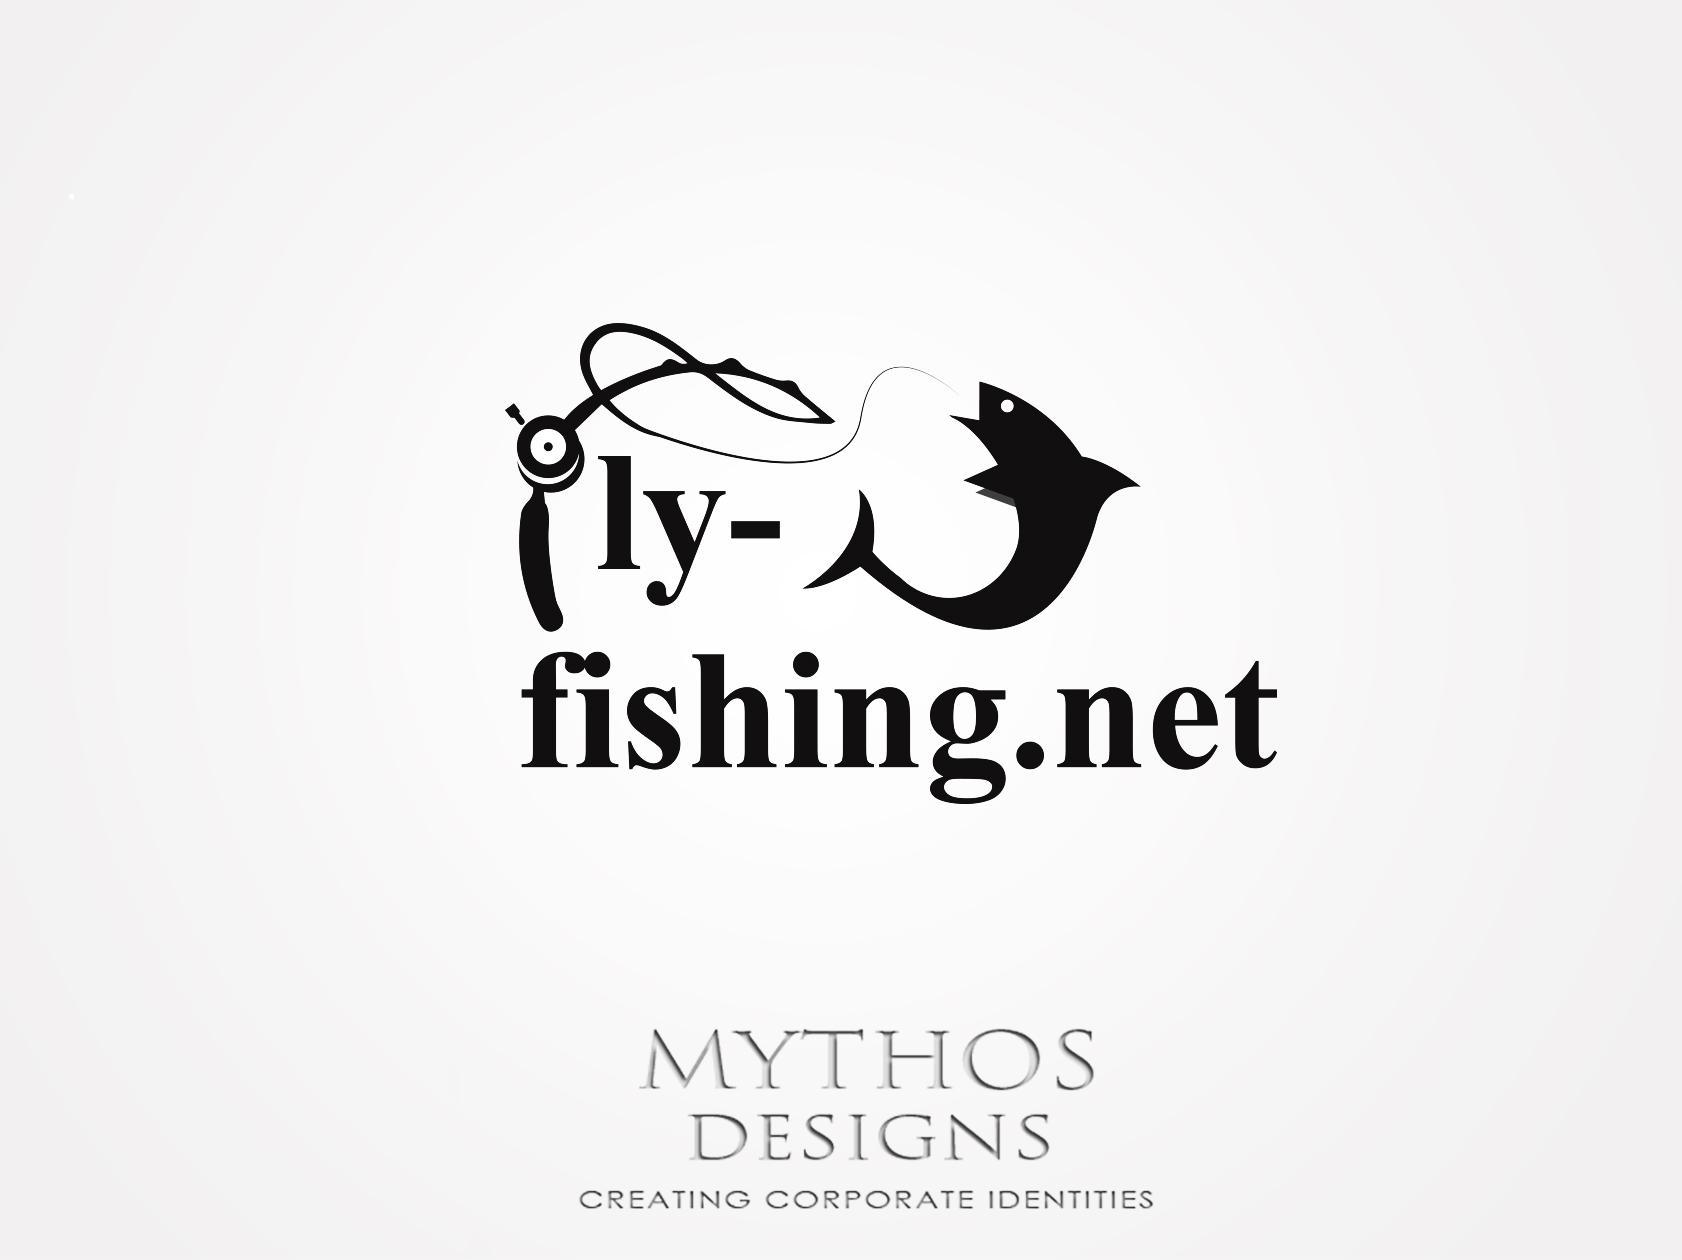 Logo Design by Mythos Designs - Entry No. 30 in the Logo Design Contest Artistic Logo Design for fly-fishing.net.